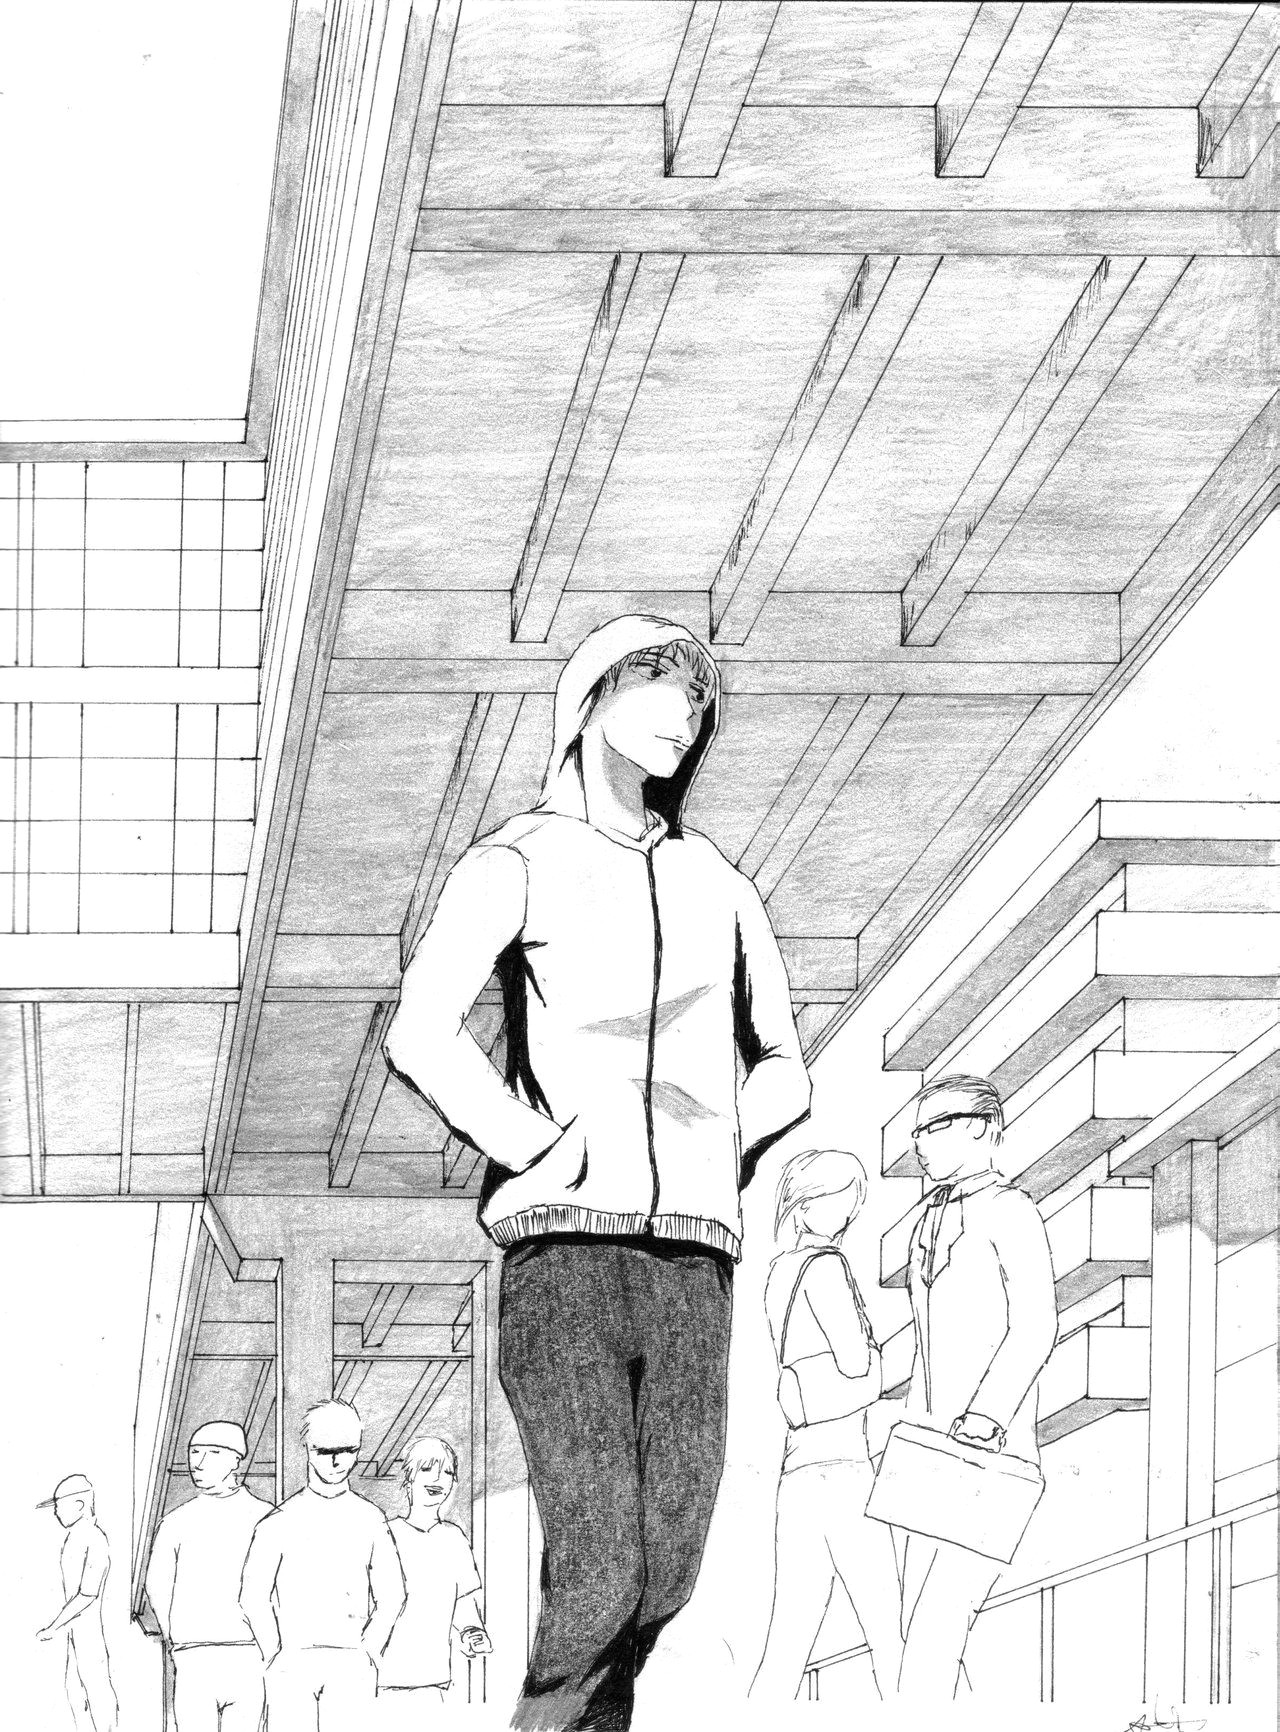 Drawing Anime Perspective Sketch Perspective Drawing Google Search Perspective Drawings